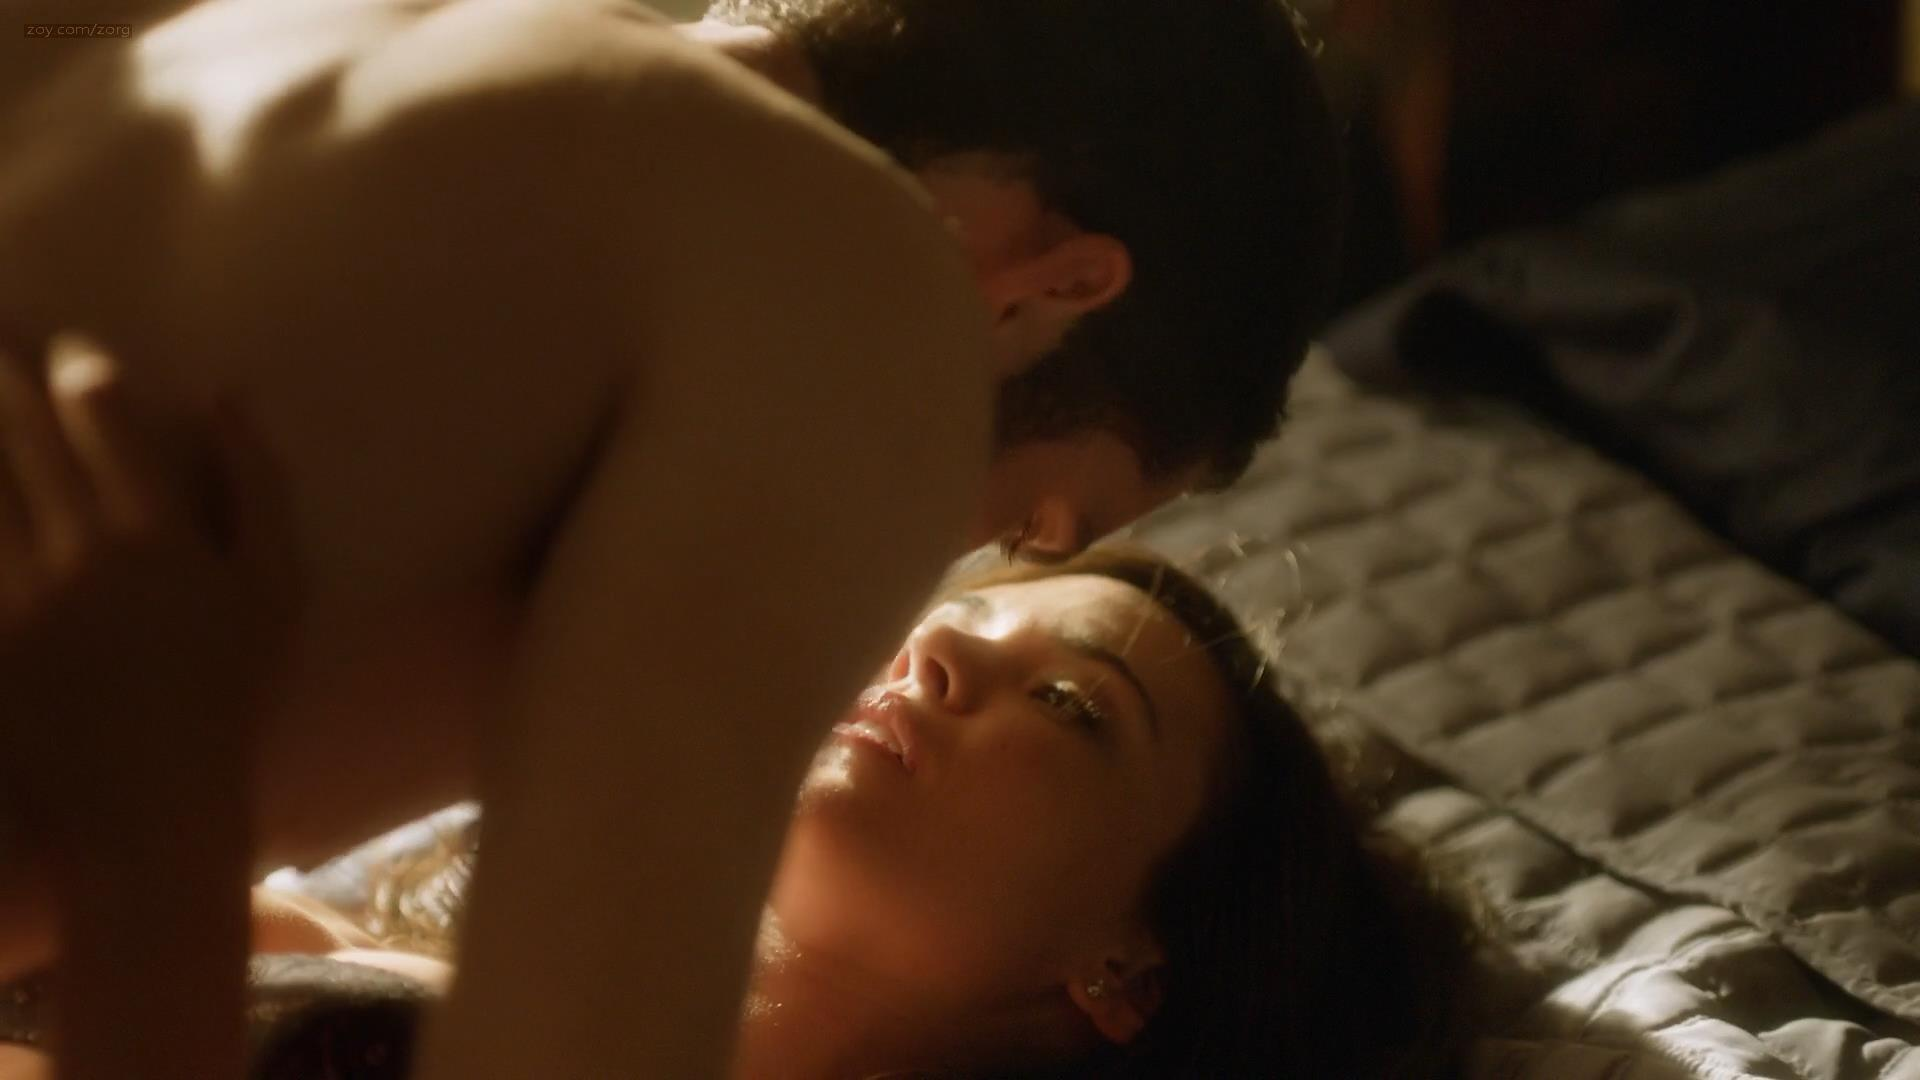 Odette Annable Hot And Mild Sex - Rush 2014 S1E8 Hd1080P-3300